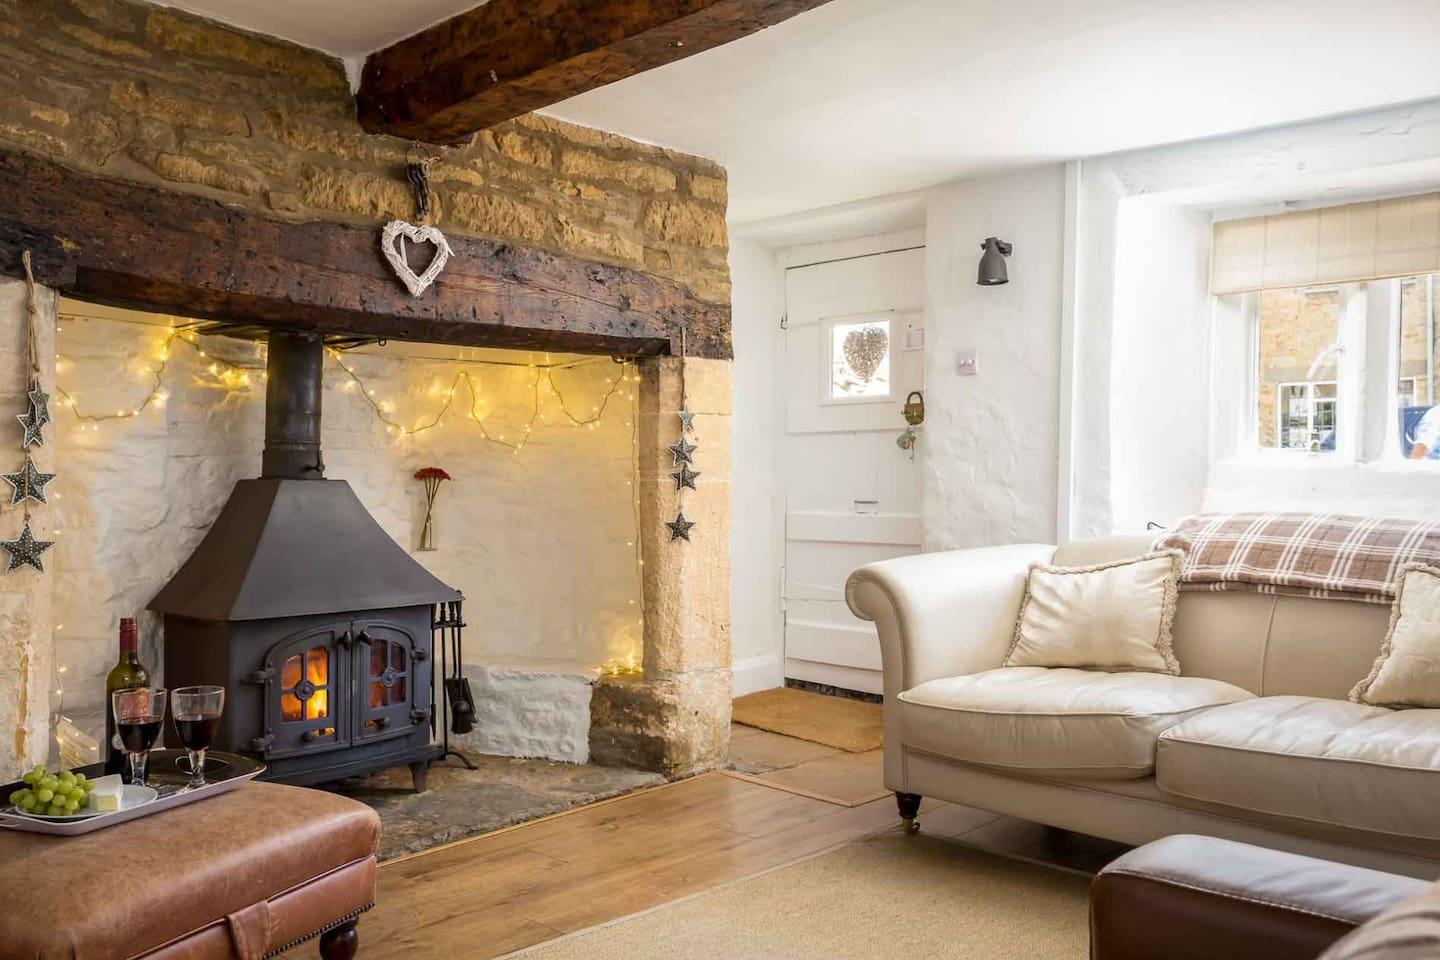 Plenty of comfortable seating, a large inglenook fireplace and cosy wood burning stove